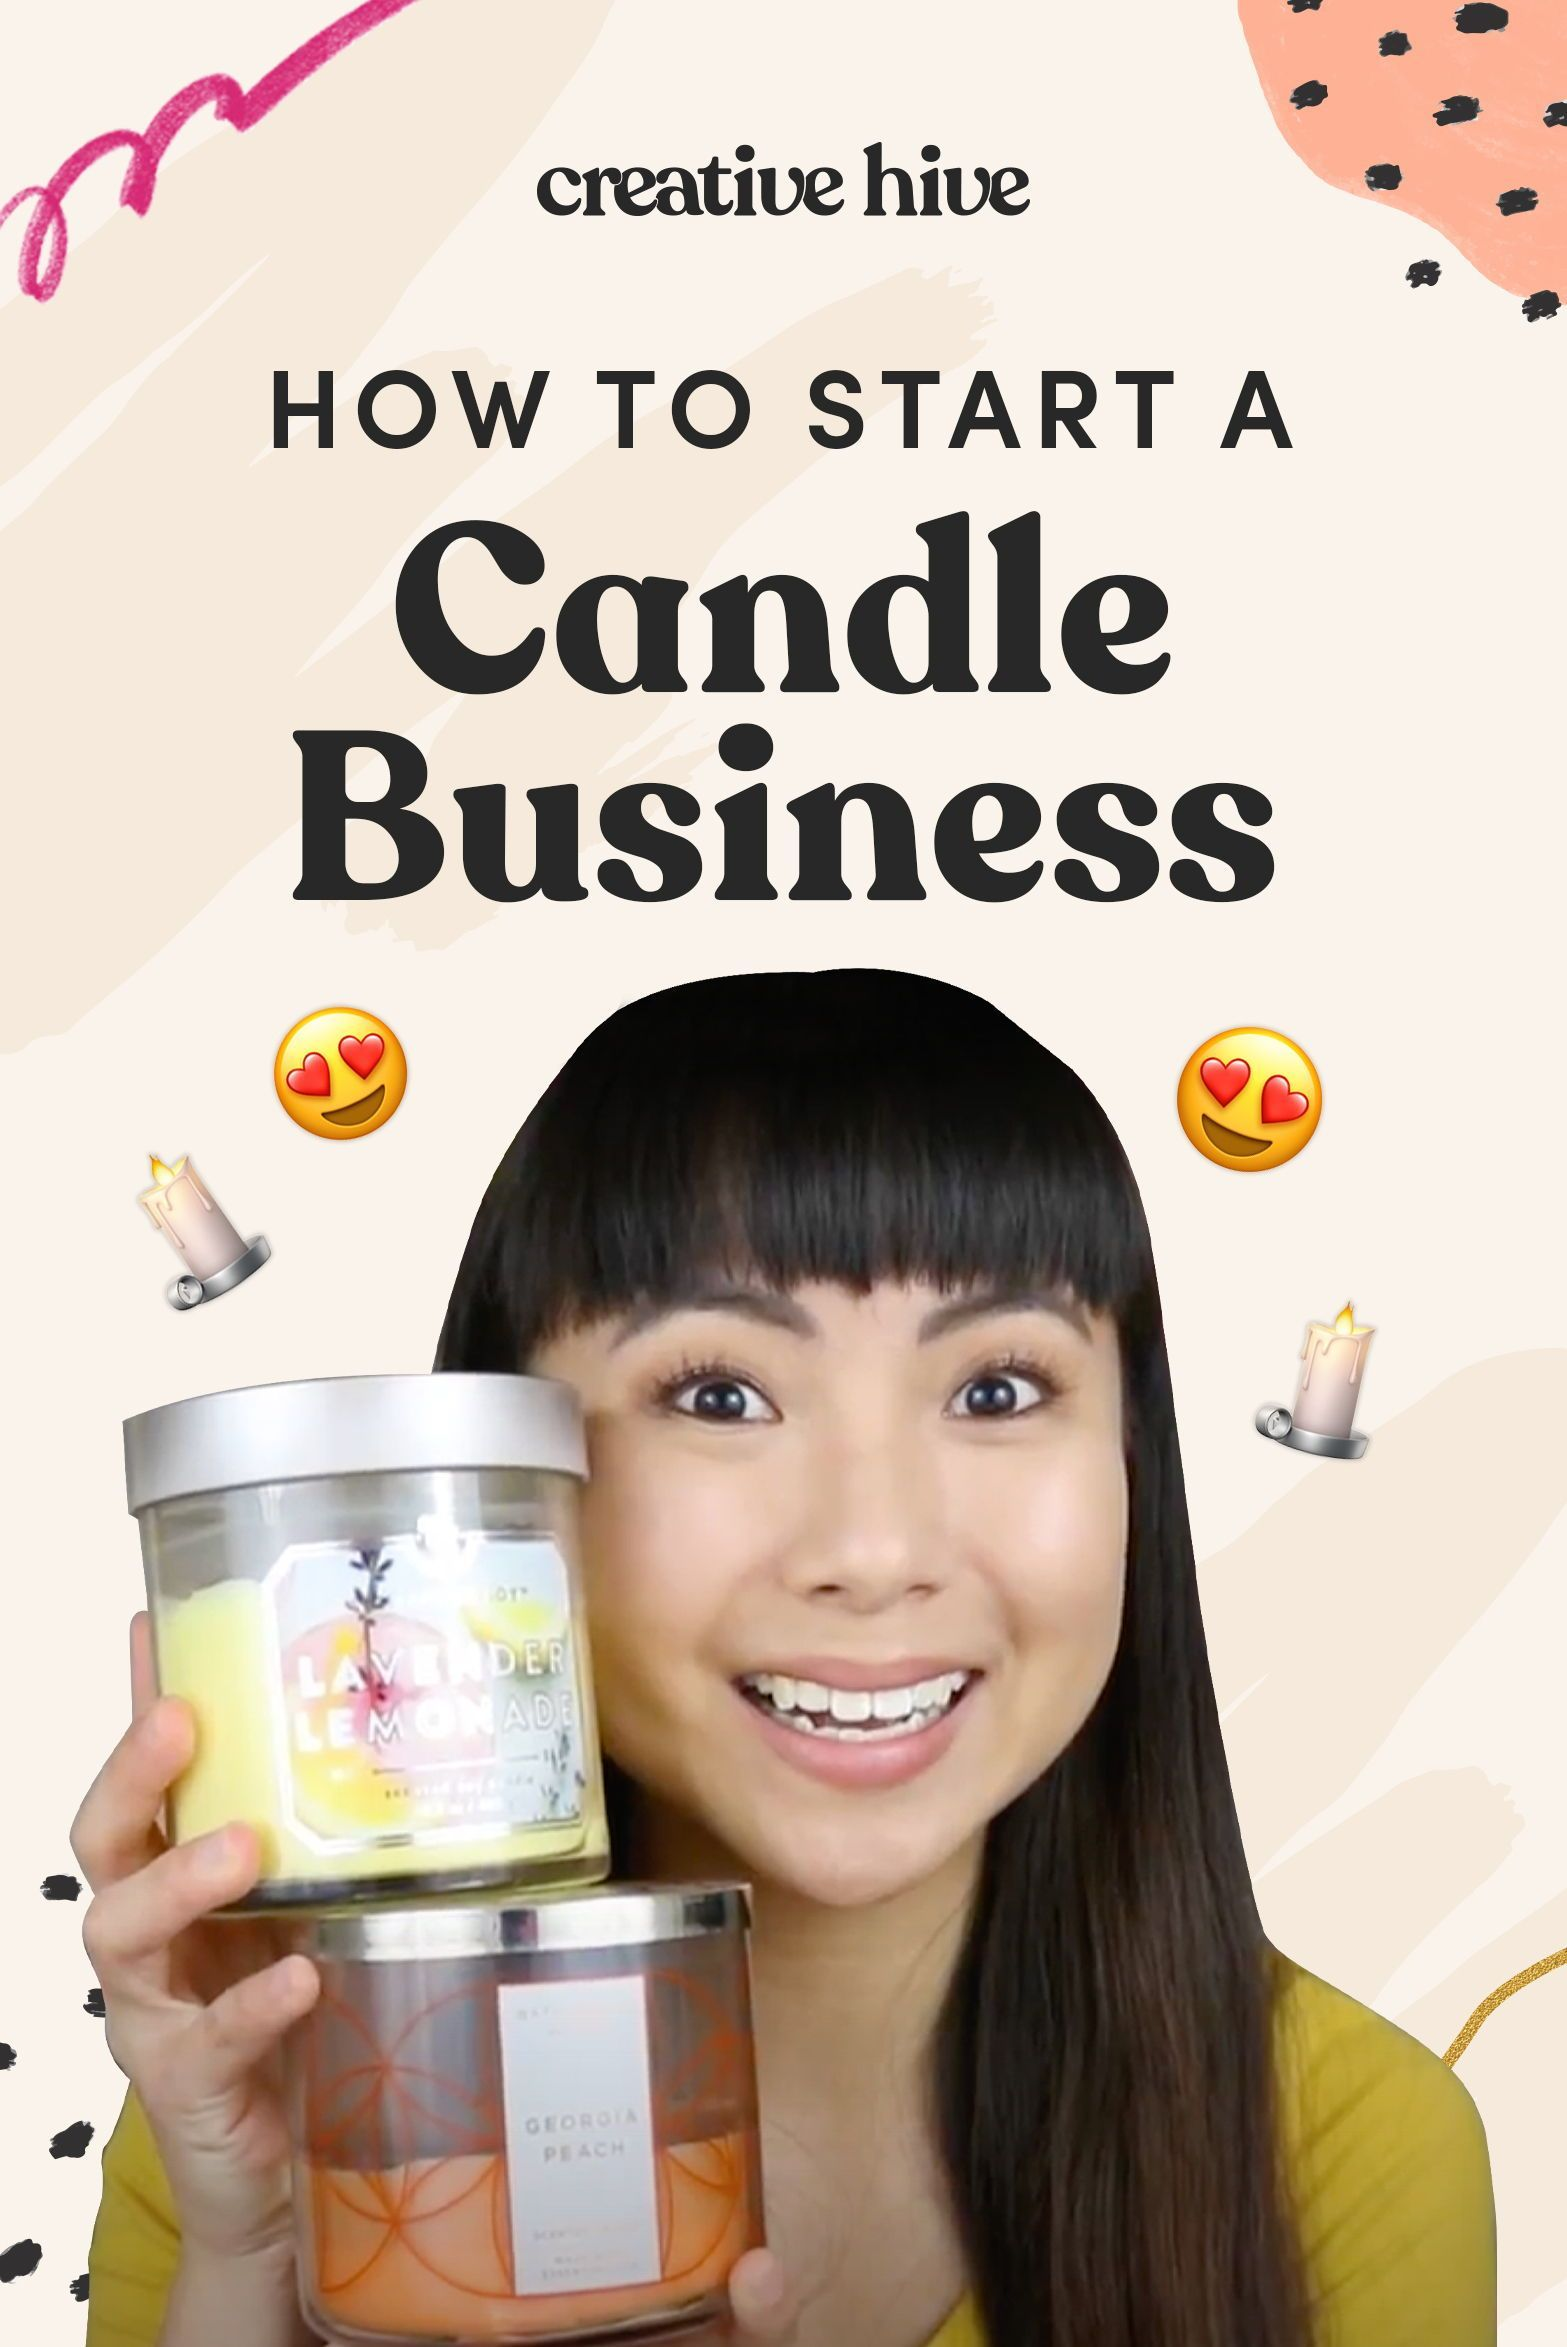 How To Start A Candle Business Candle Business Handmade Business Handmade Candles